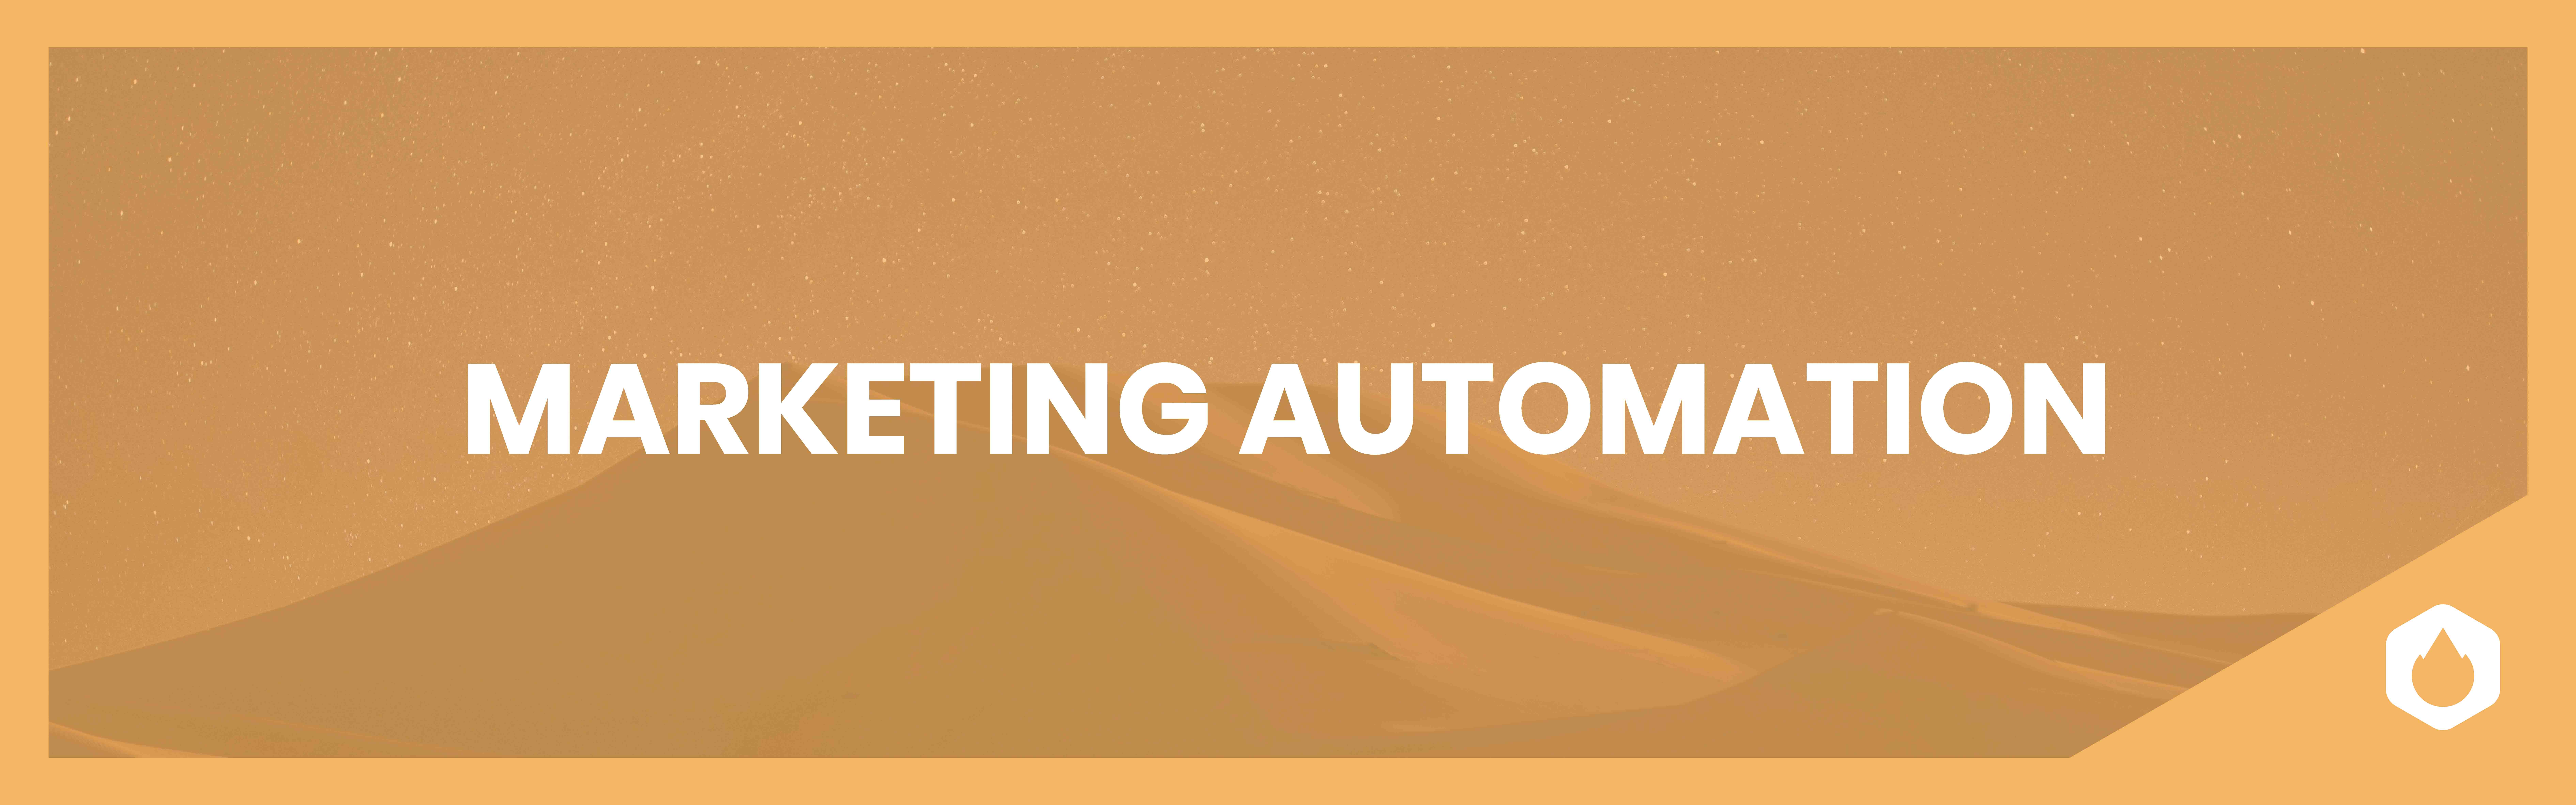 What is Marketing Automation in 2021 ? - LinkHelp